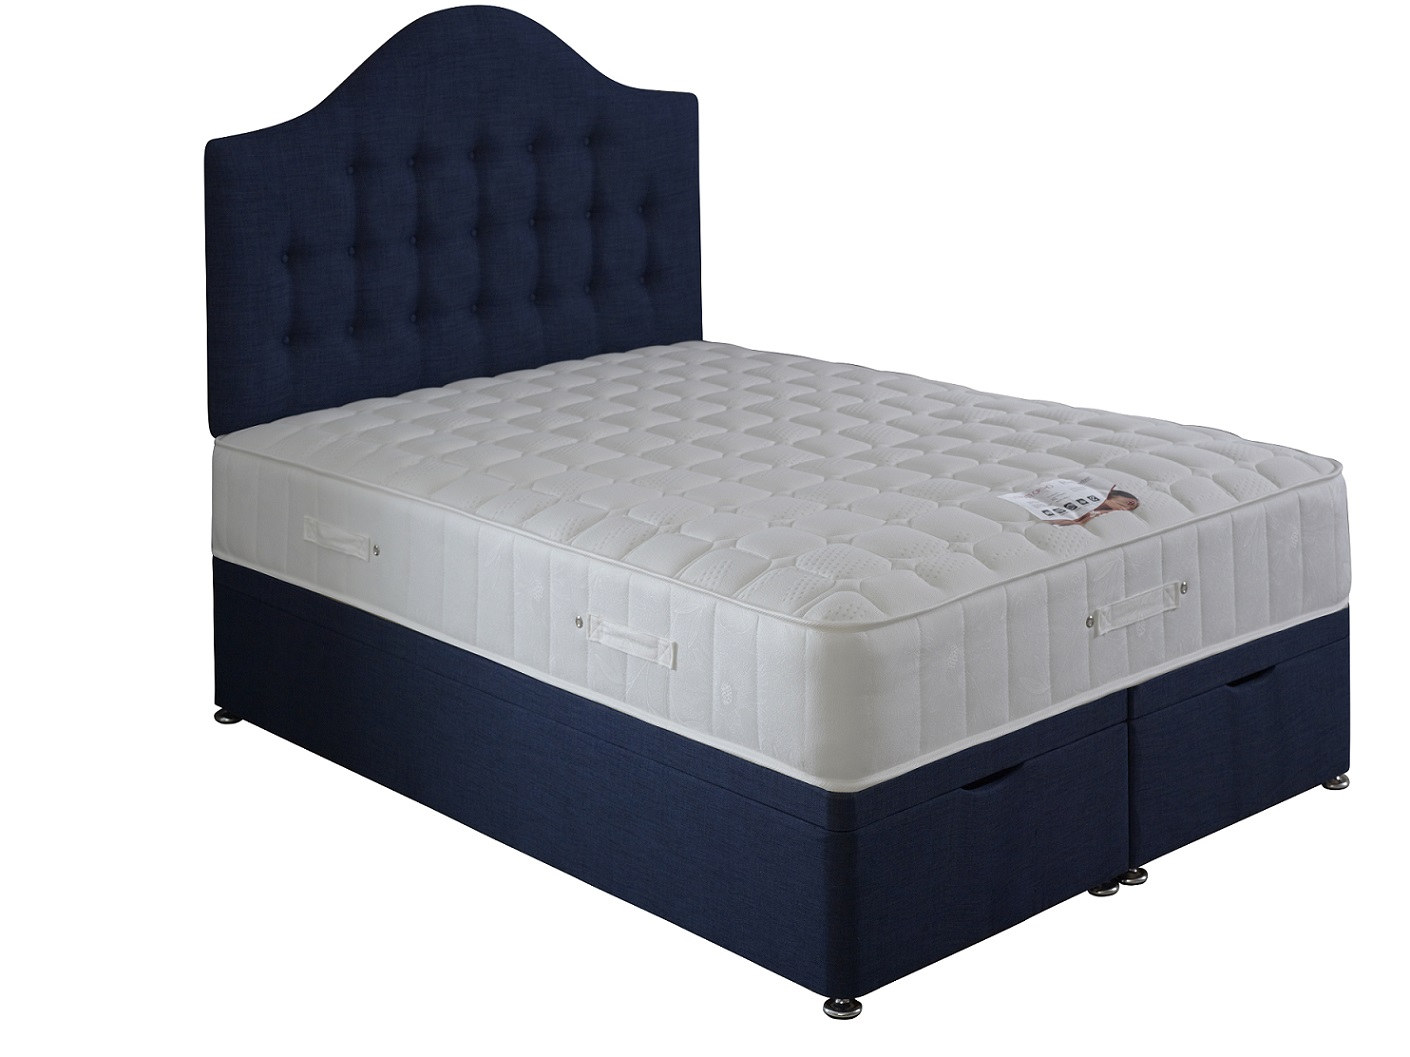 Bedmaster Ultimate Ortho 1000 Pocket Sprung Mattress